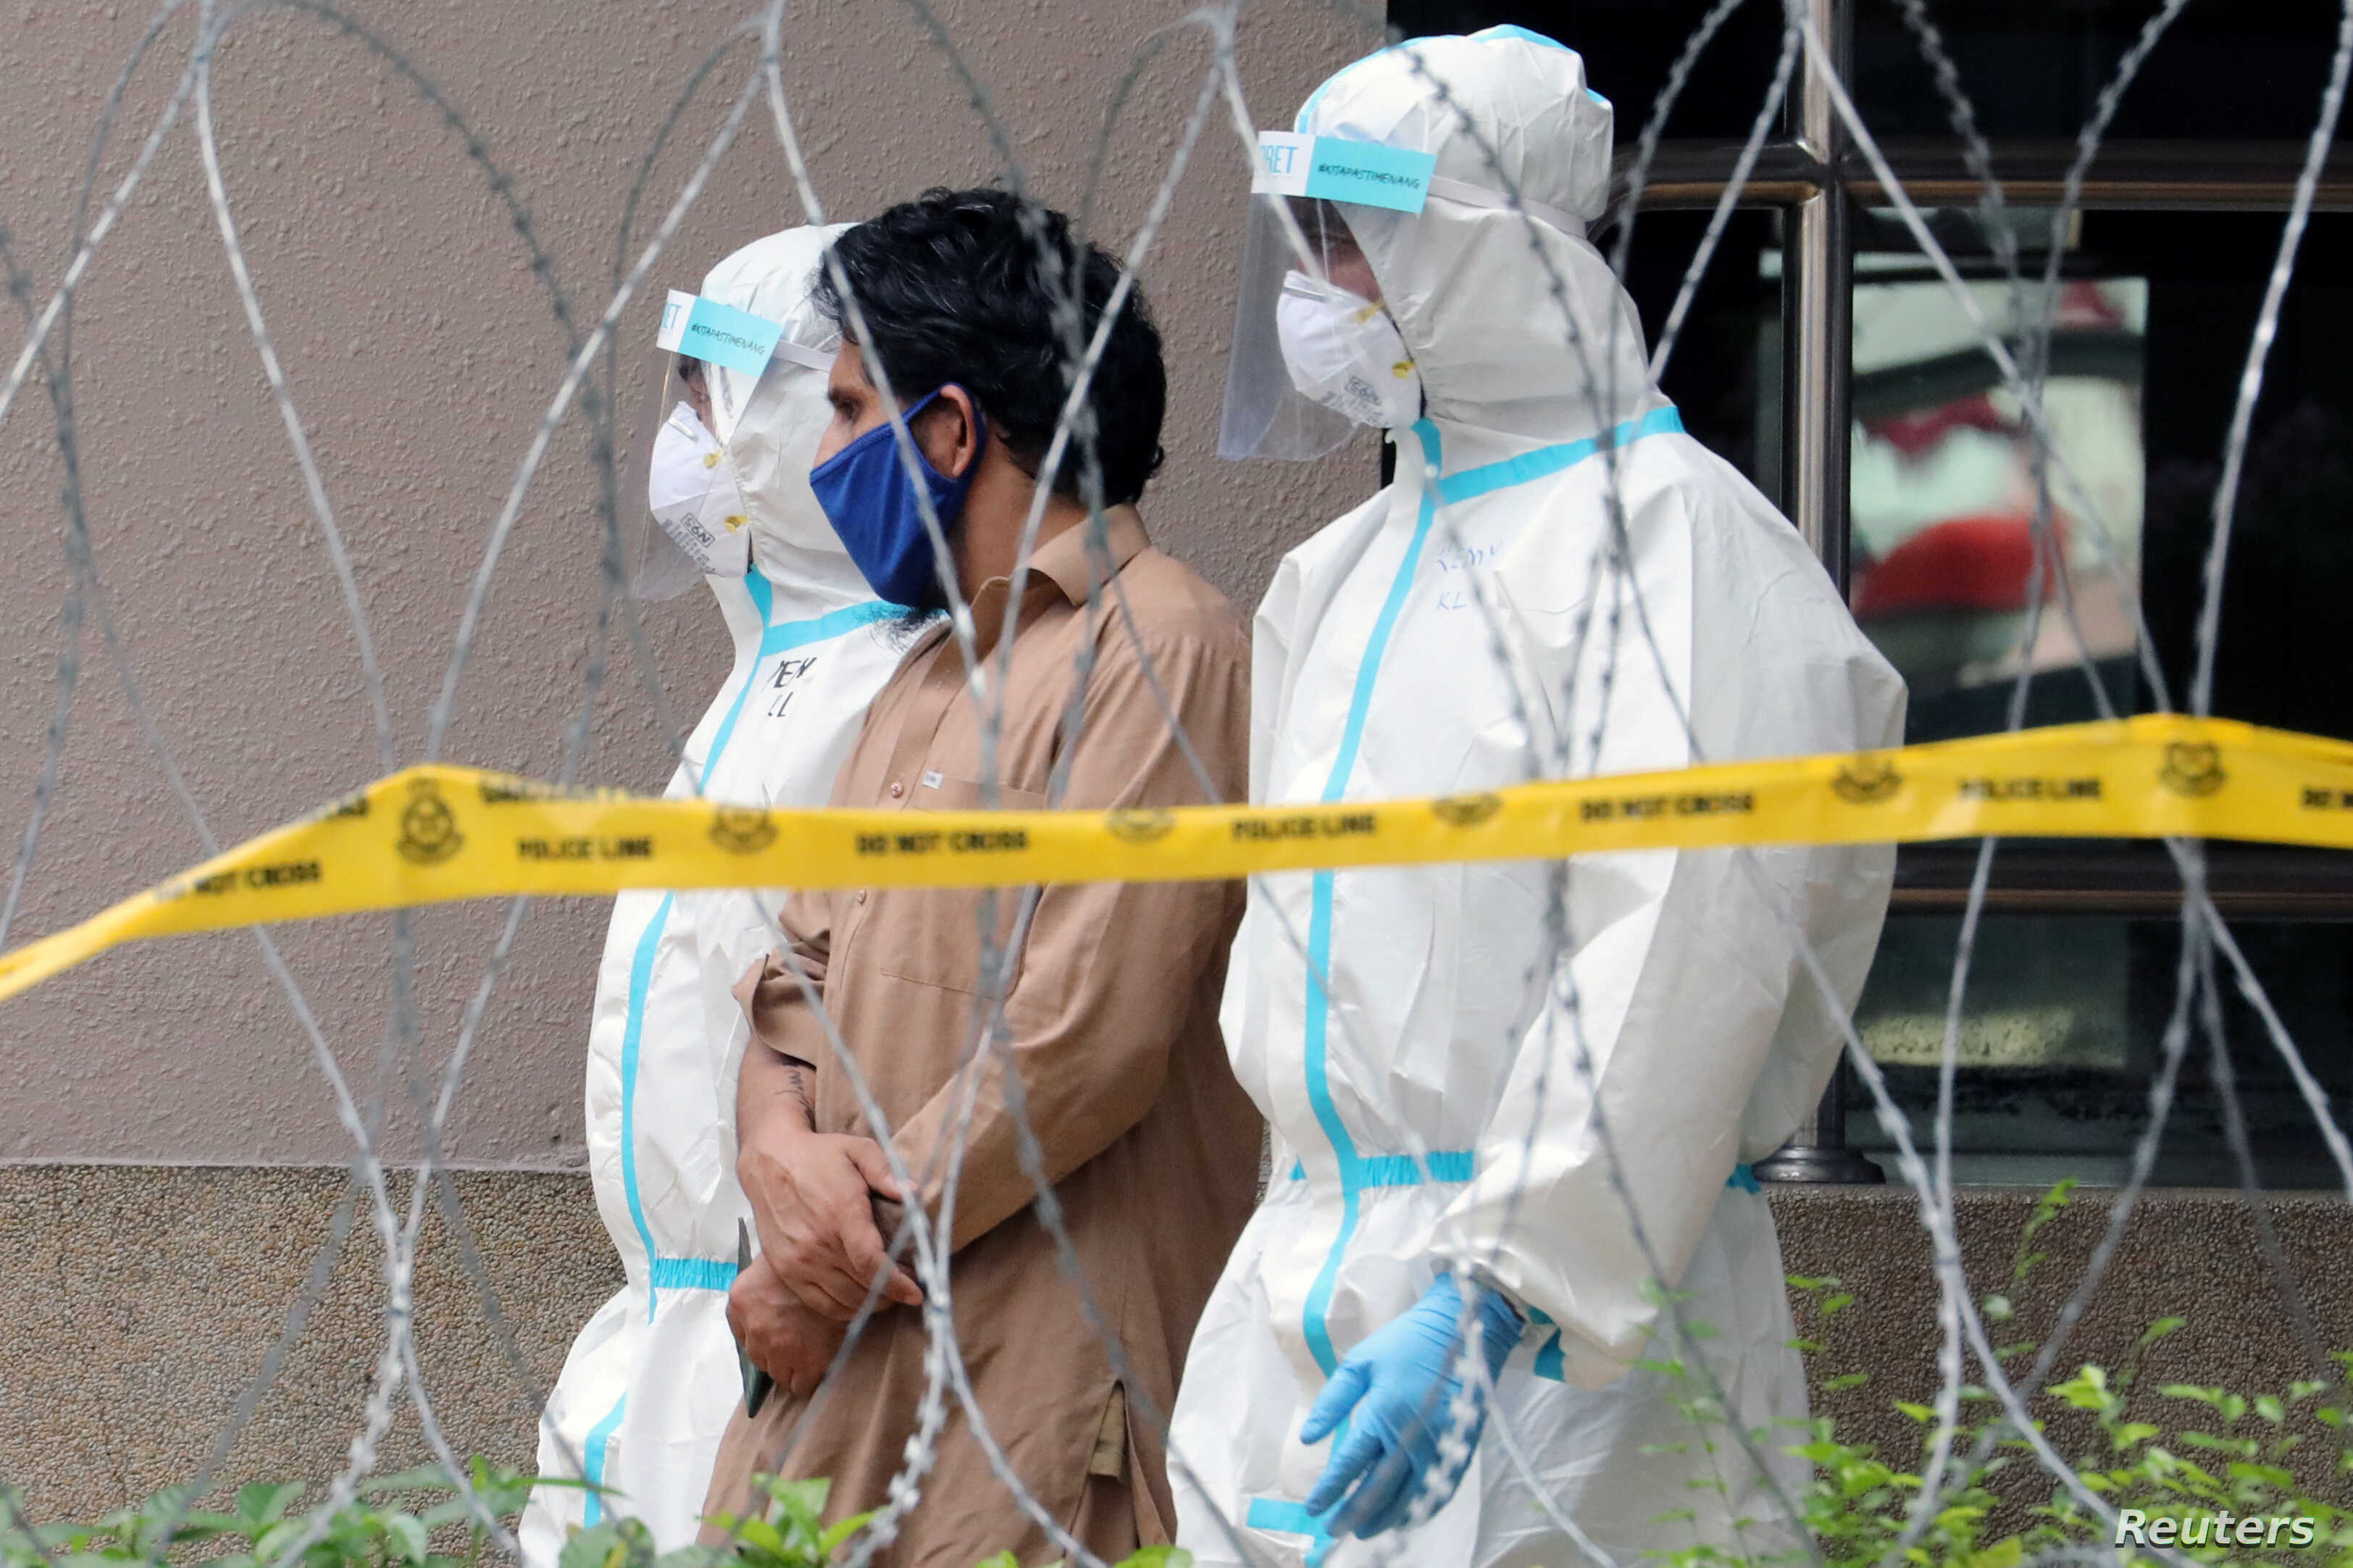 Singapore S Coronavirus Outbreak Sends Malaysia Scrambling To Test Migrant Workers Voice Of America English